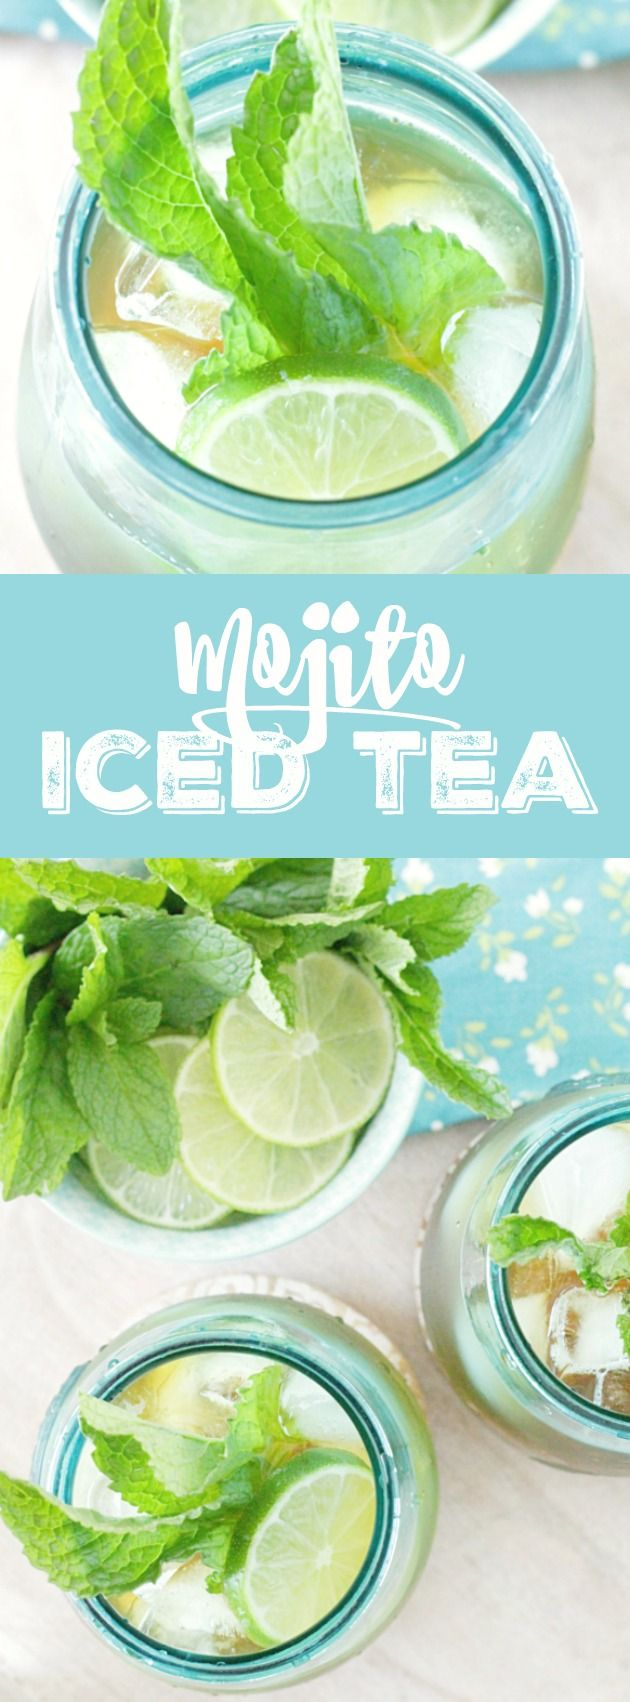 Mojito Iced Tea - brew lime tea, add lime & ice cubes, sweeten. optional: add lime juice. #summer drink recipe, easy